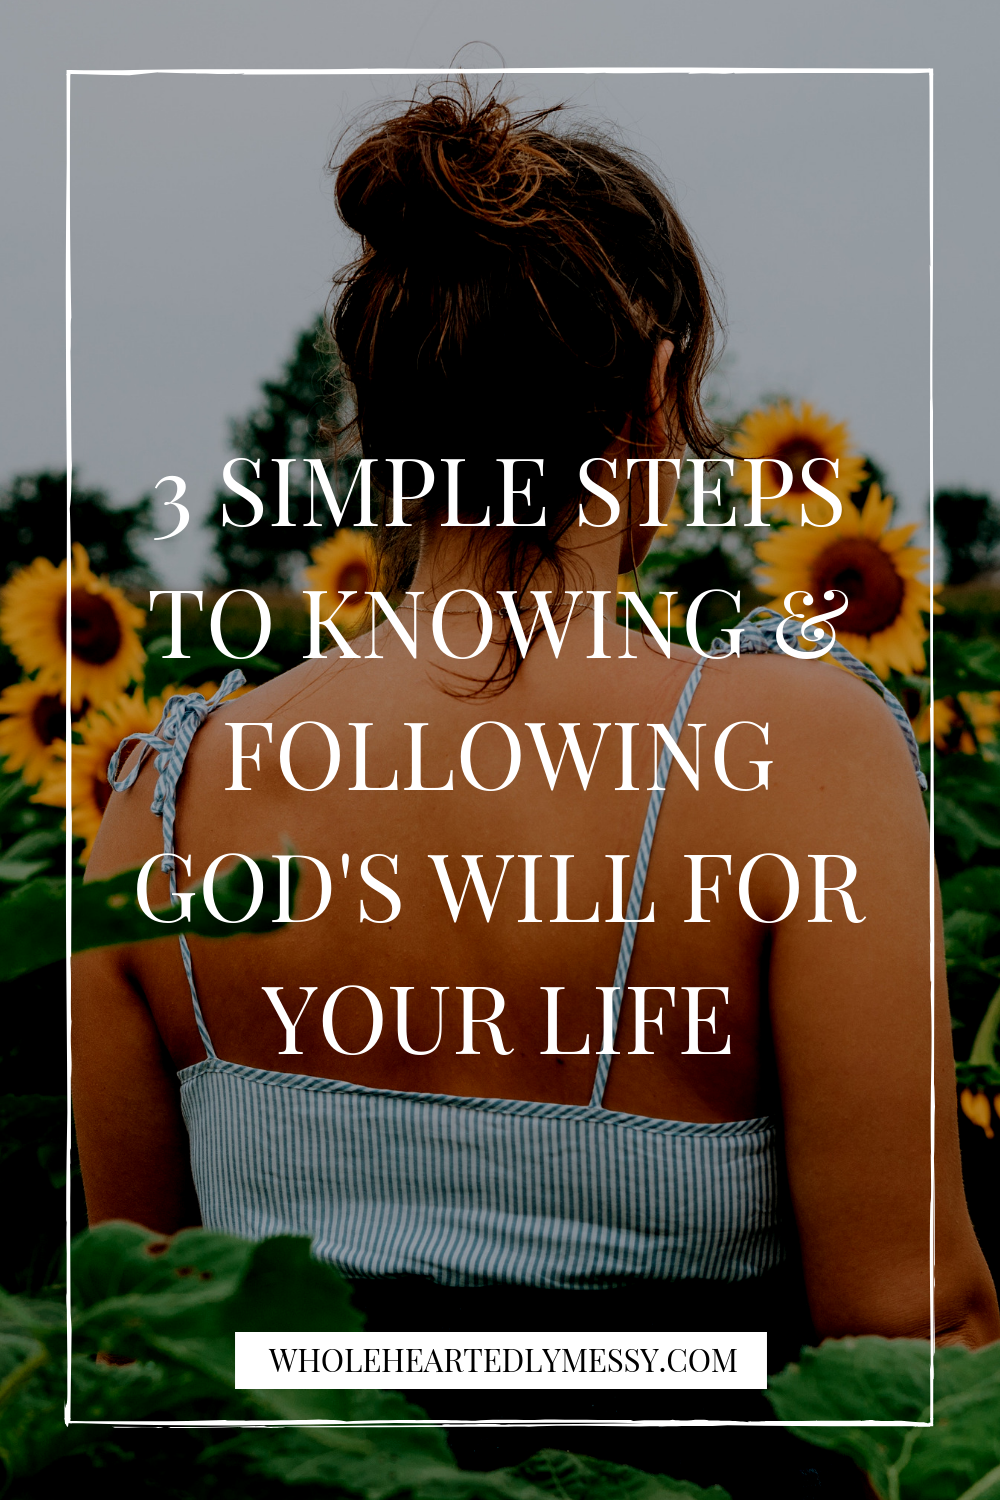 3 SIMPLE STEPS TO KNOWING & FOLLOWING GOD'S WILL FOR YOUR LIFE.png